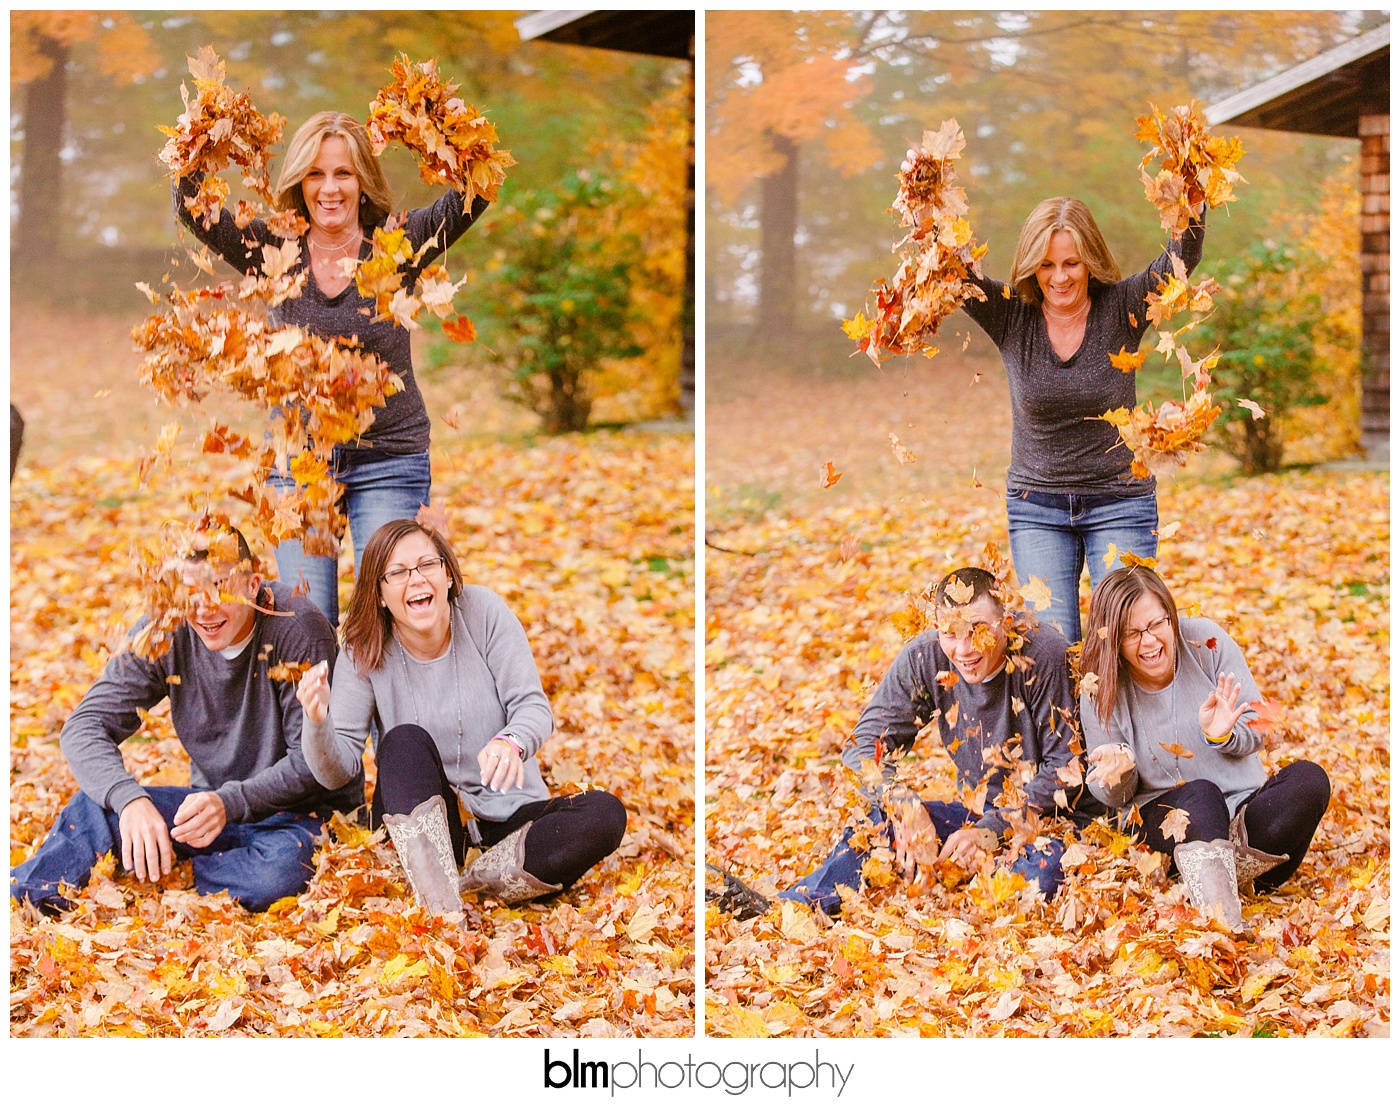 2016,20161018,9537,Ashley,BLM,BLM_9537,Boutwell Family,Boutwell-Family-Portraits,Brianna Morrissey,CCF,Cody,Cold Comfort Farm,Home,Mark,Morgan,NH,October,Outdoor,Personal,Pet,Peterborough,Photographer,Photography,Portrait,Sandy,Terry,